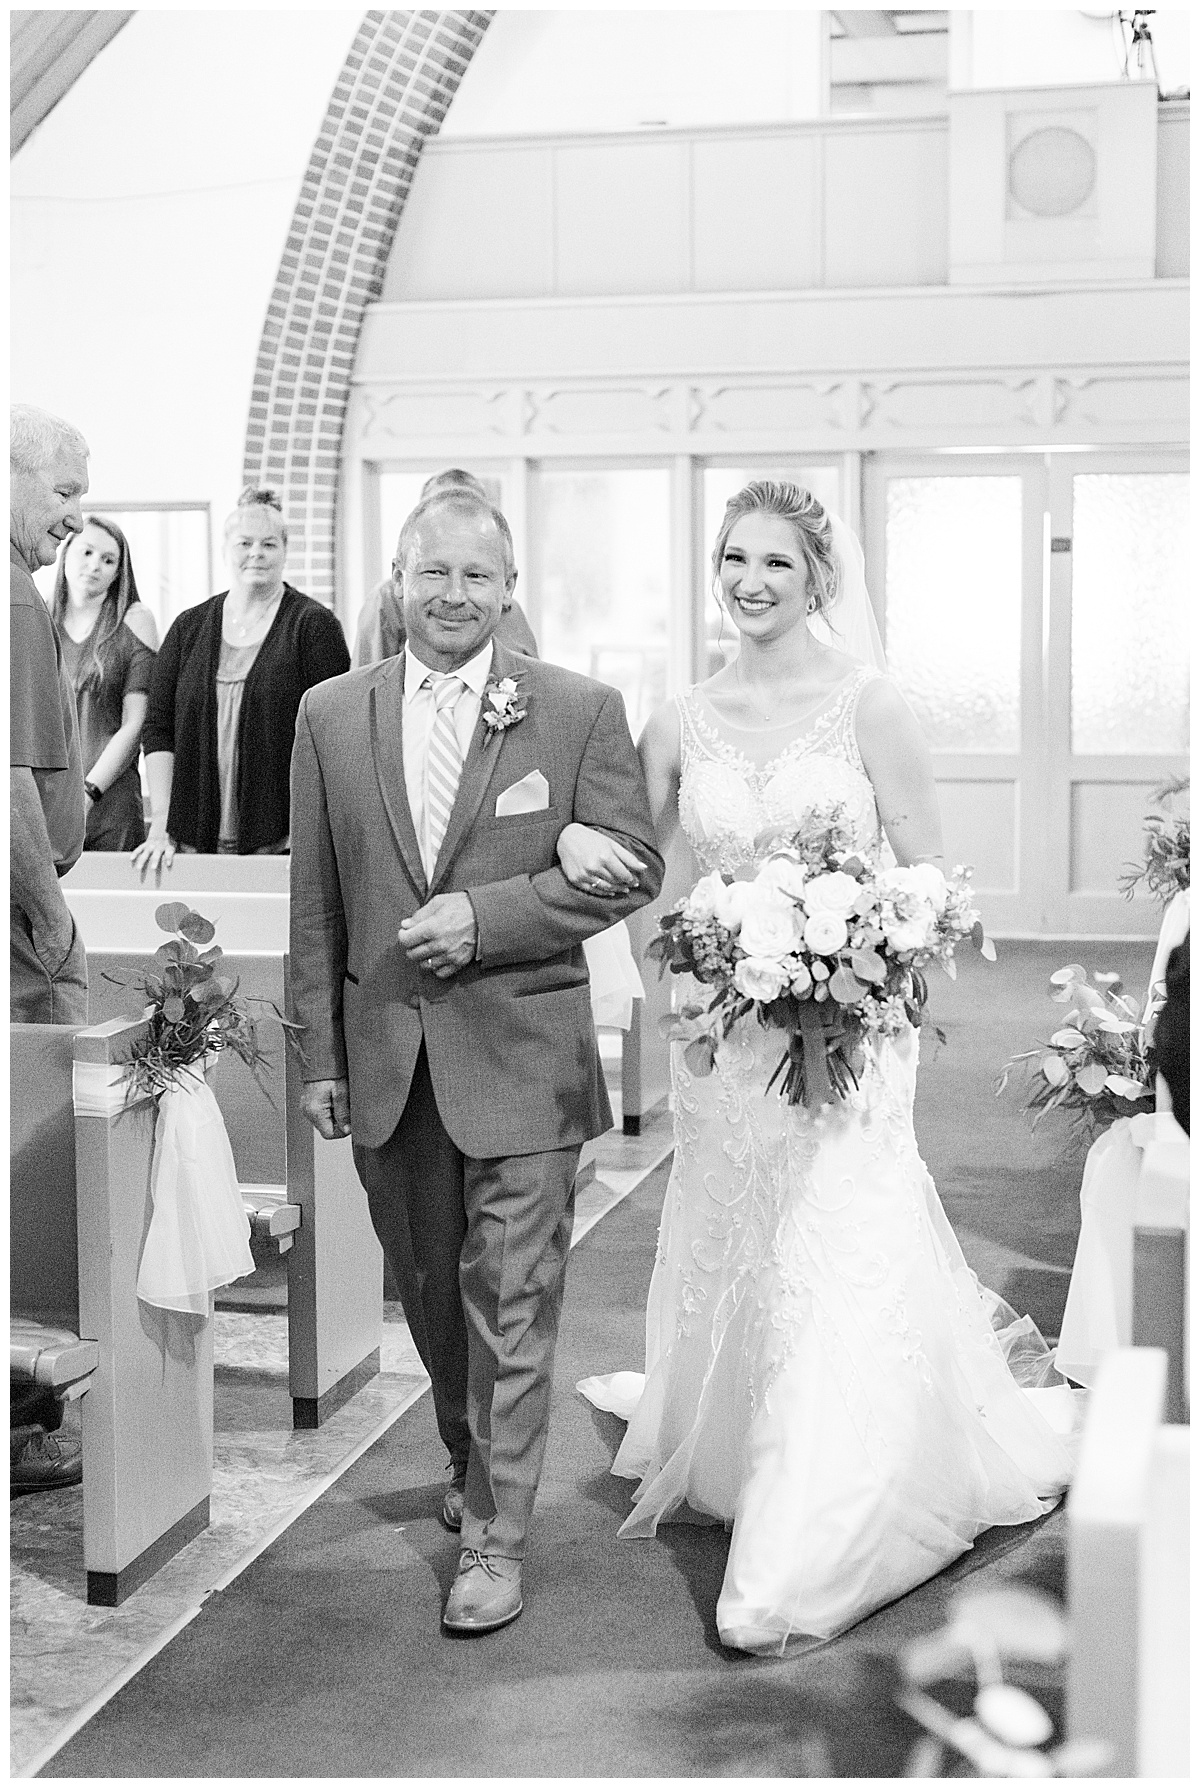 Bride walking down the aisle during wedding ceremony at Chalmers Community Church in Chalmers, Indiana